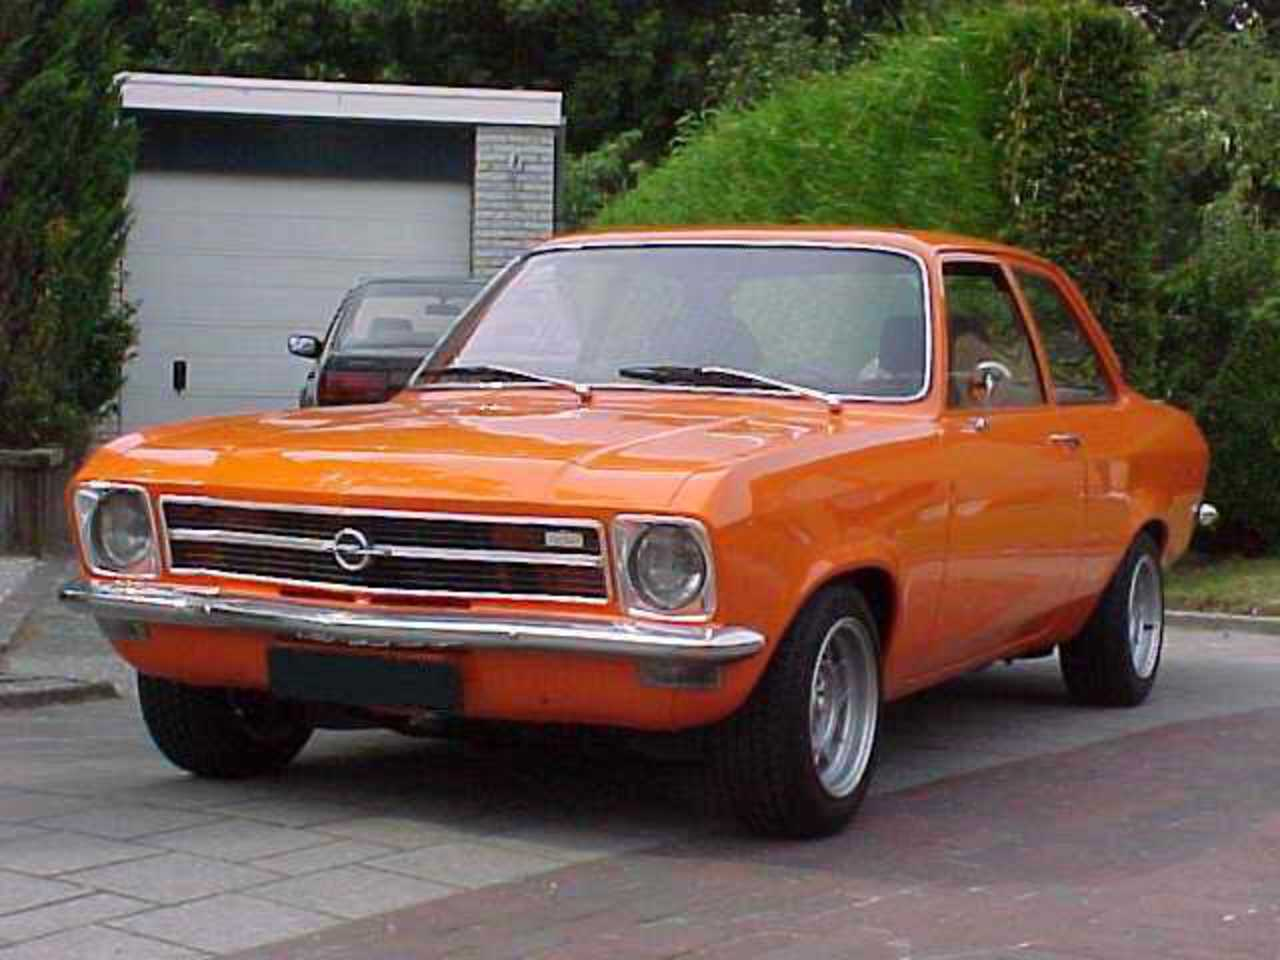 Opel Ascona 18 E Sport. View Download Wallpaper. 640x480. Comments